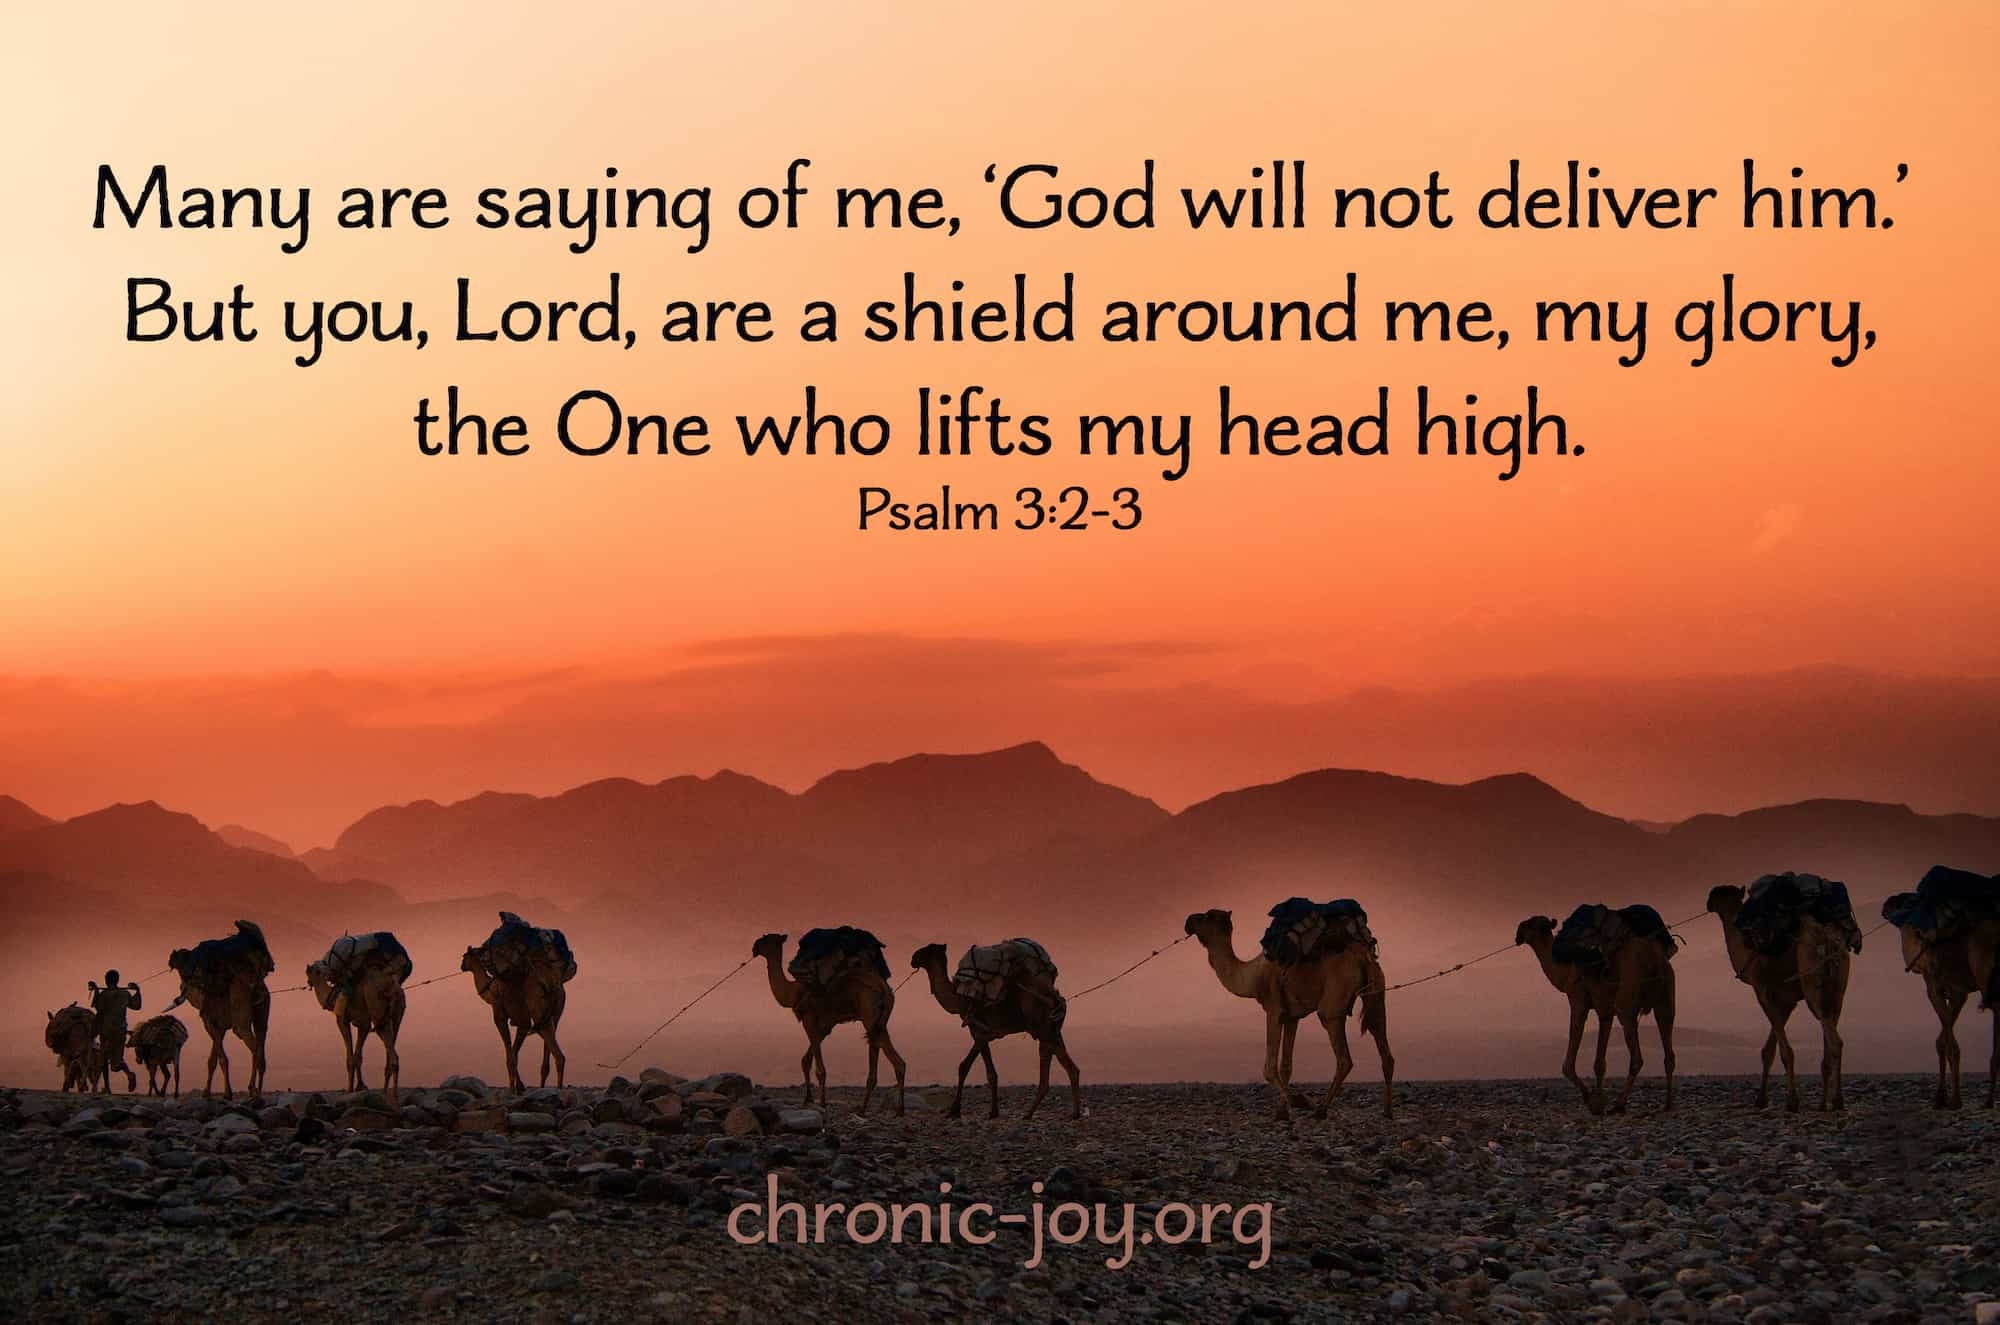 Lord, you are my shield